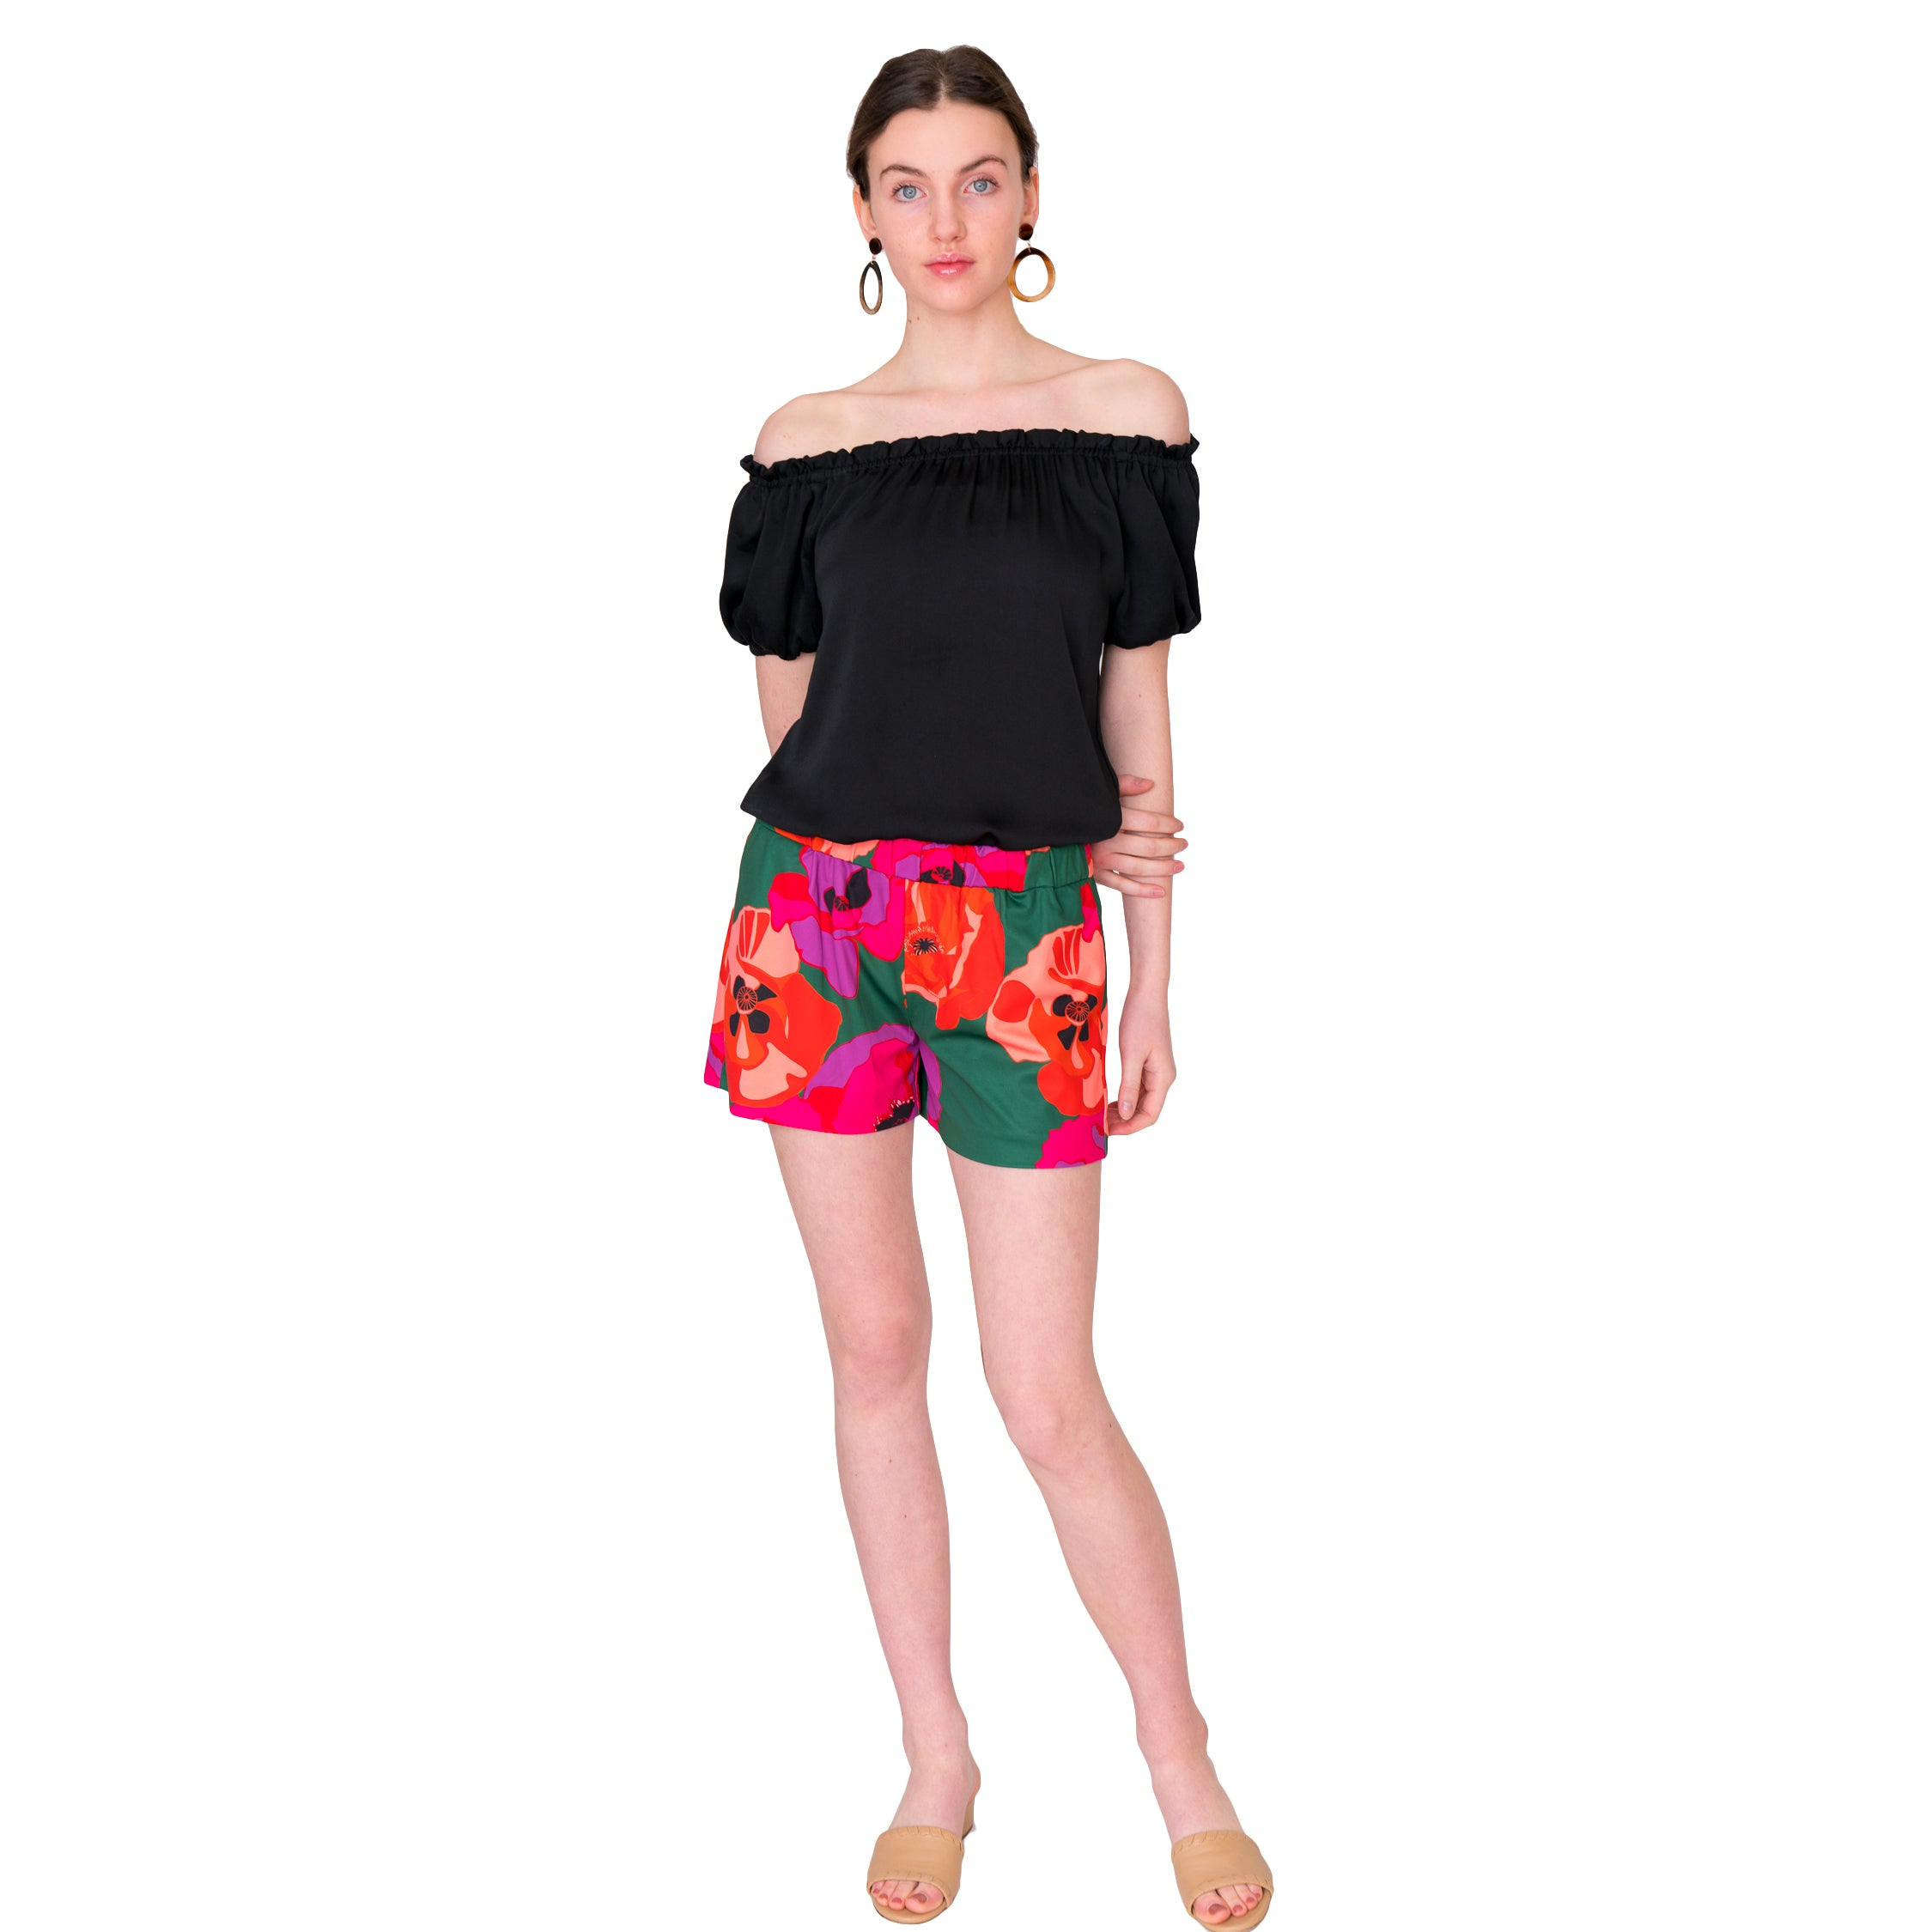 Libby Shorts in Green Poppy - Elizabeth Ackerman New York